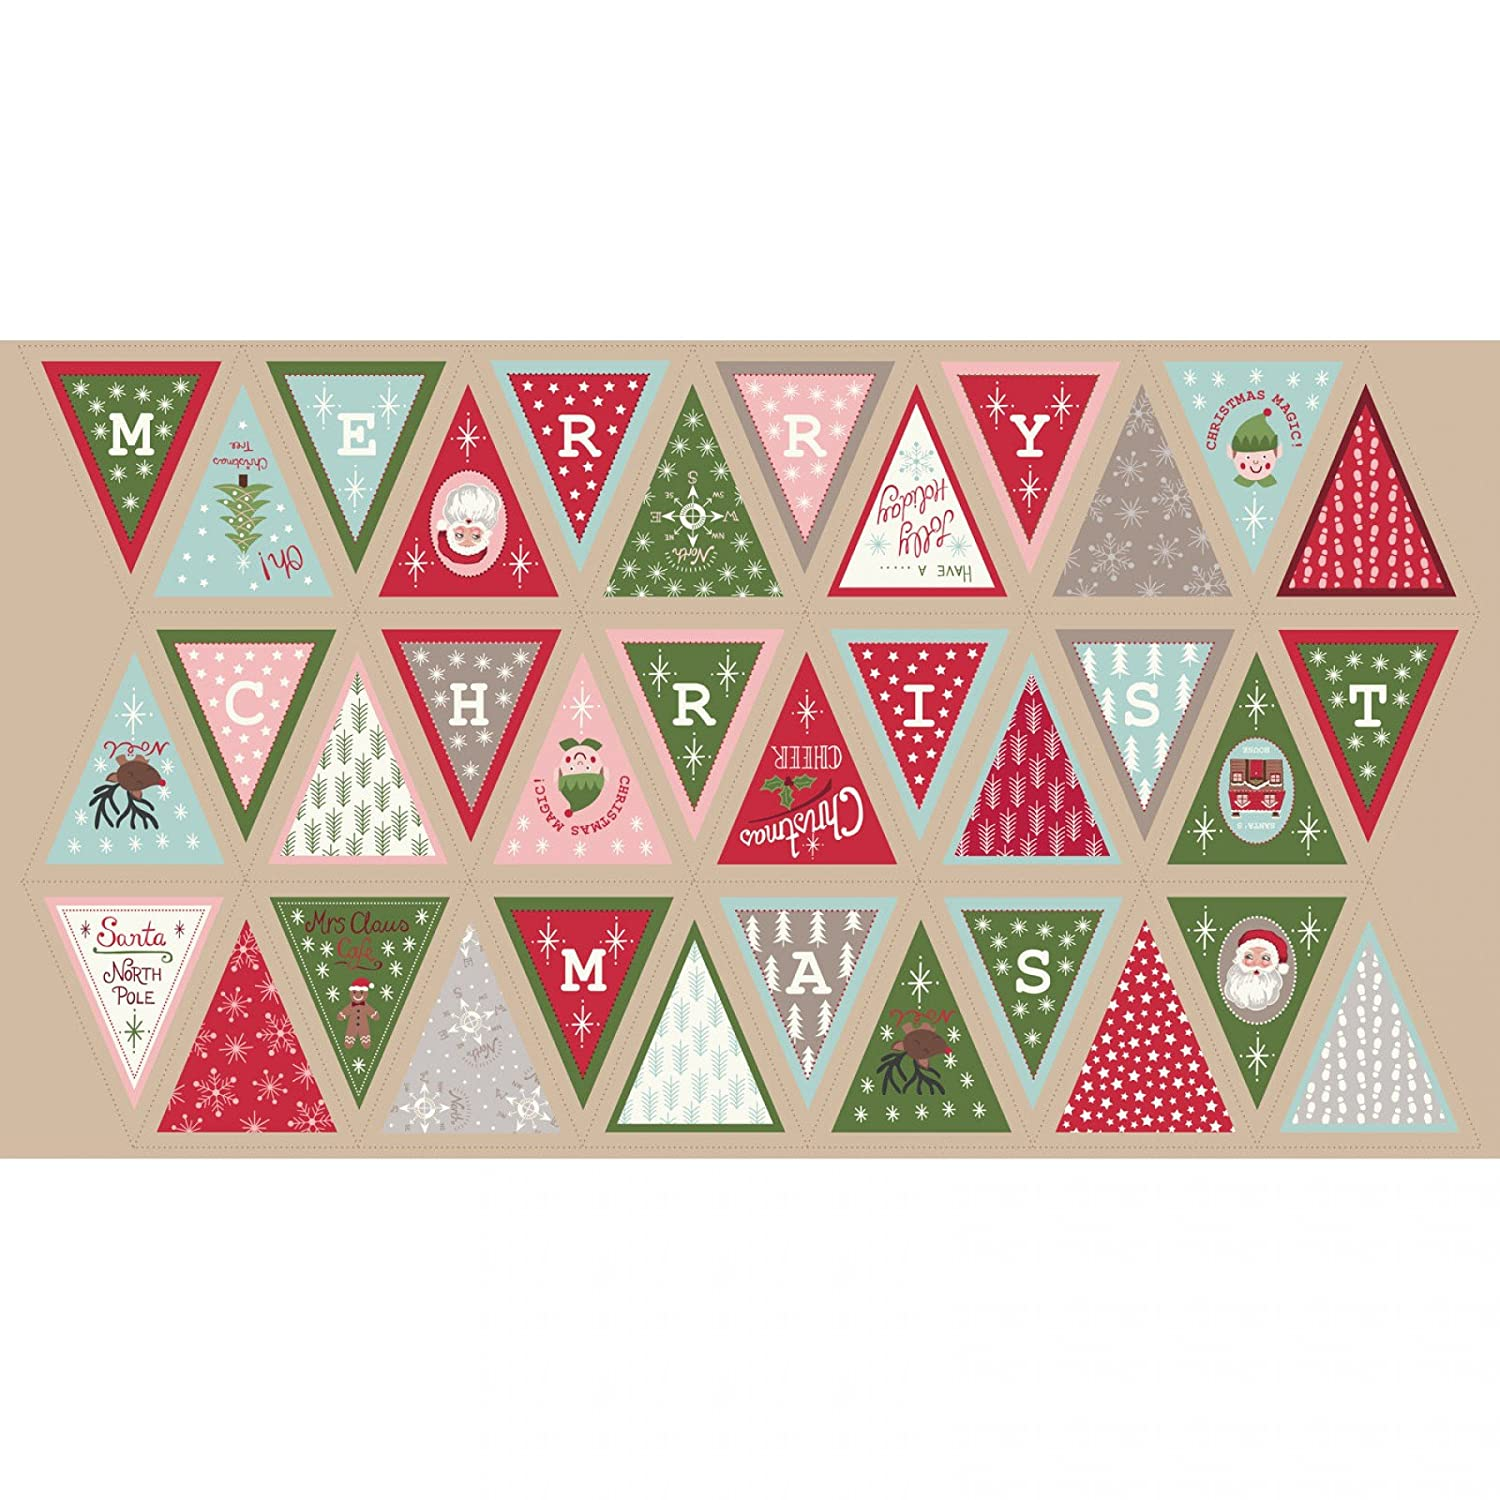 Scandinavian Christmas Holiday Bunting Cotton Quilting Panel Fabric Makower 1596